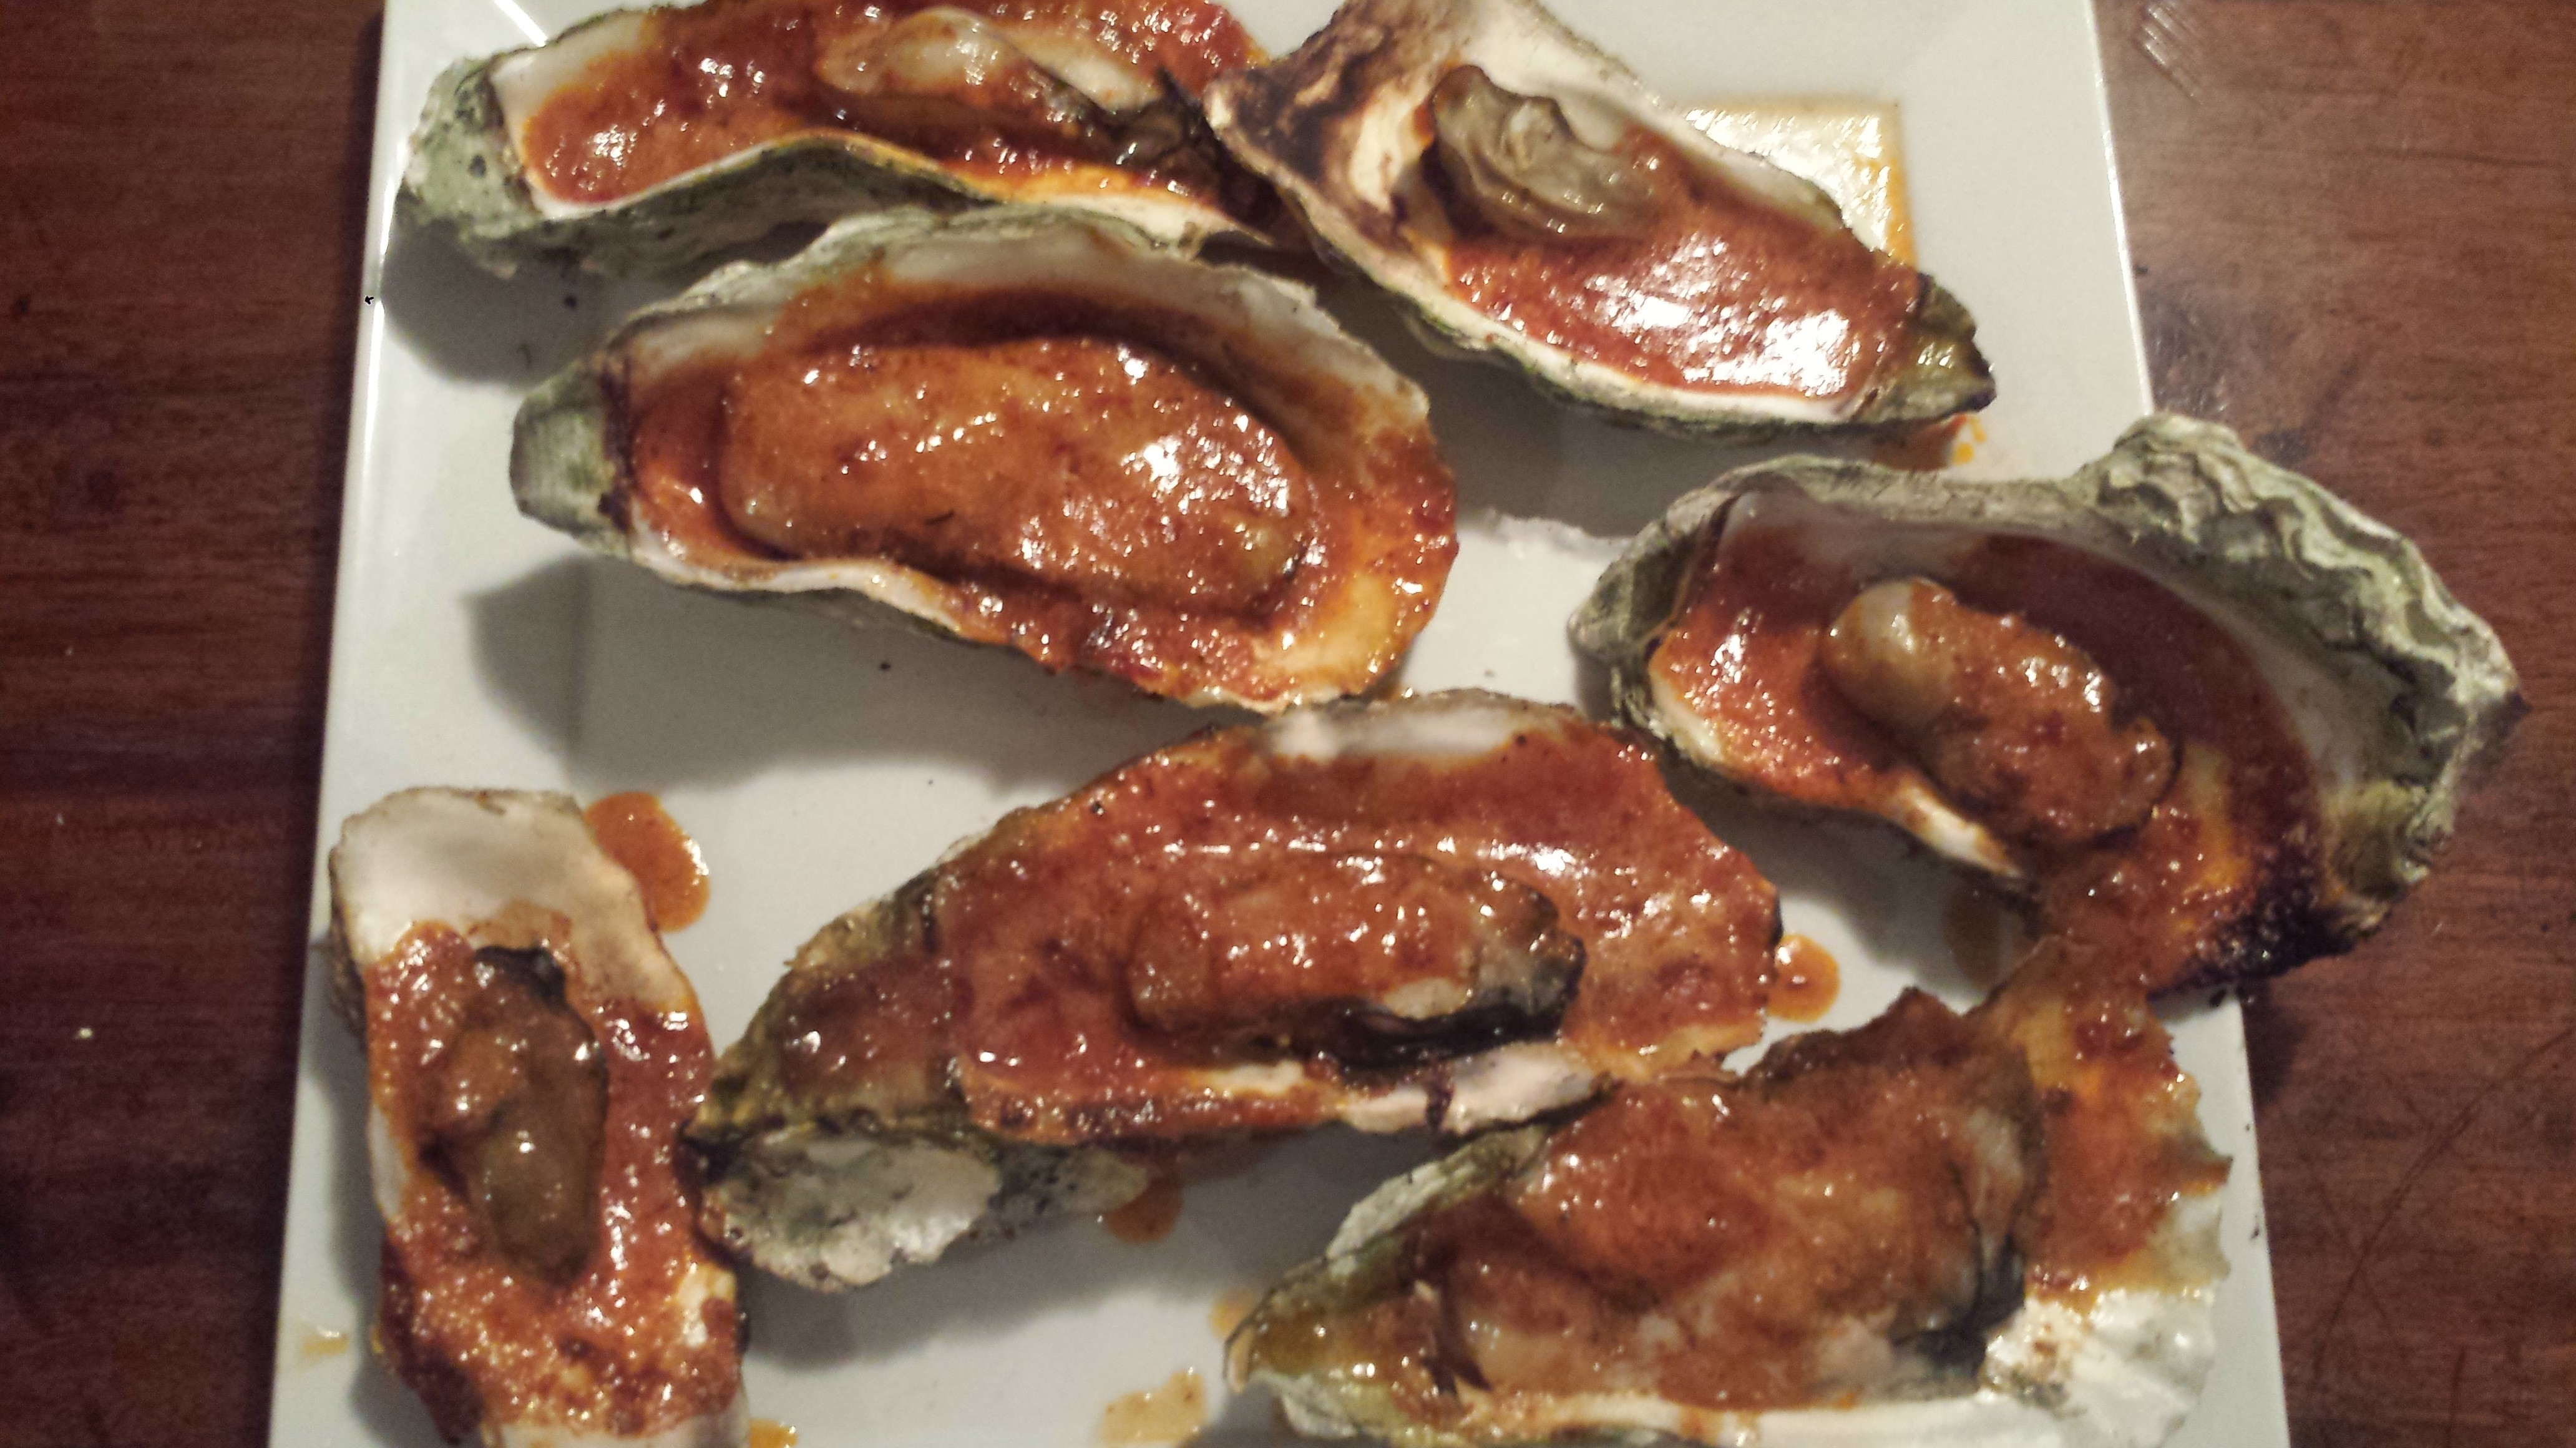 Grilled Oysters with Garlic Chipotle Butter | goodmotherdiet